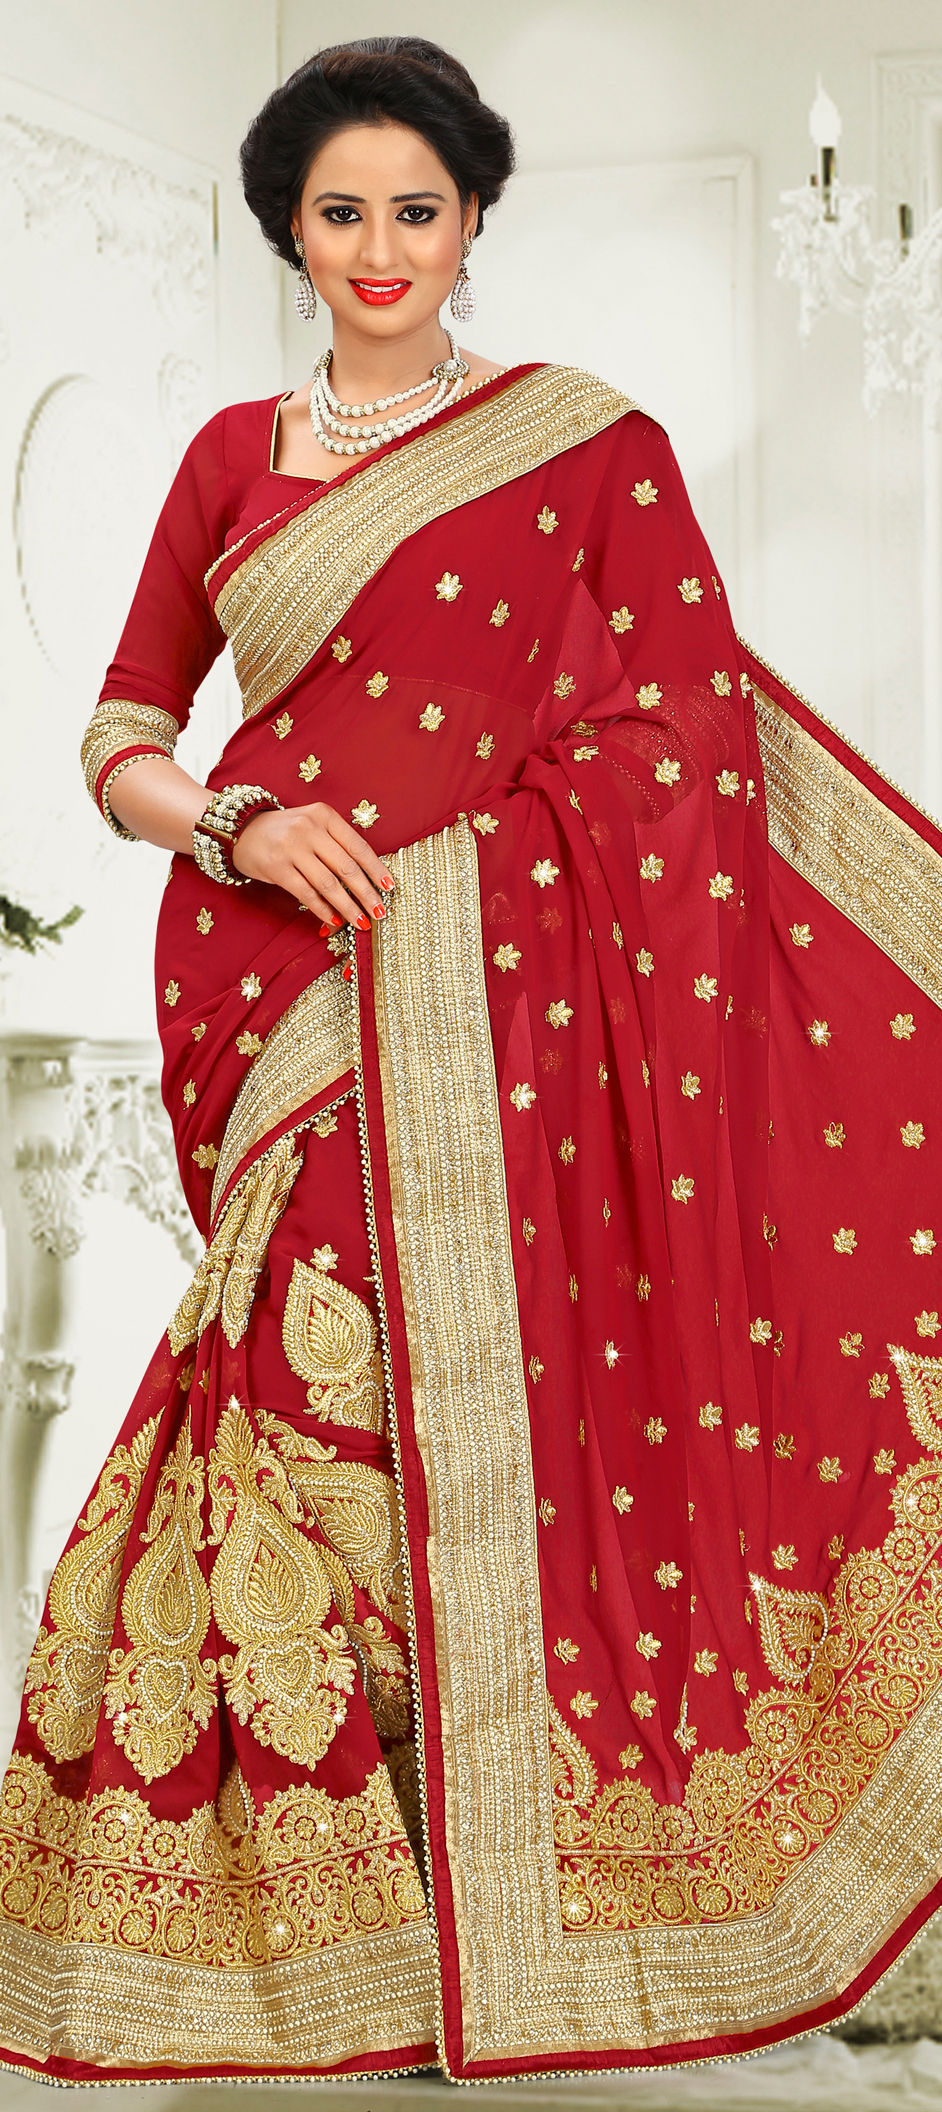 5e97dde769b2 180401: Red and Maroon color family Bridal Wedding Sarees,Party Wear ...